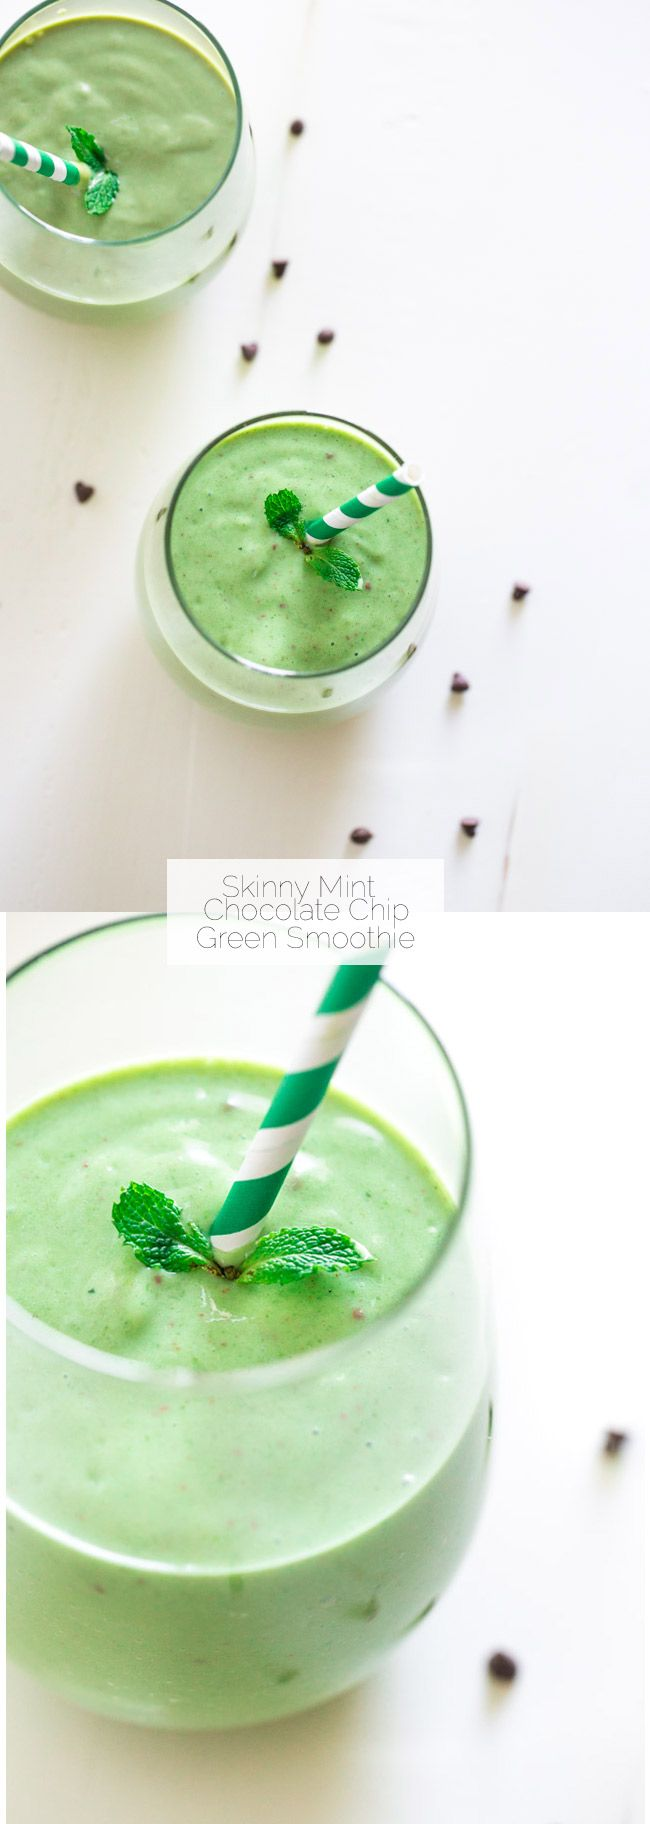 Mint Chocolate Chip Green Smoothie - Tastes like a mint chocolate chip milkshake but it's SO healthy and packed with protein and nutrients! | Foodfaithfitness.com | @FoodFaithFit